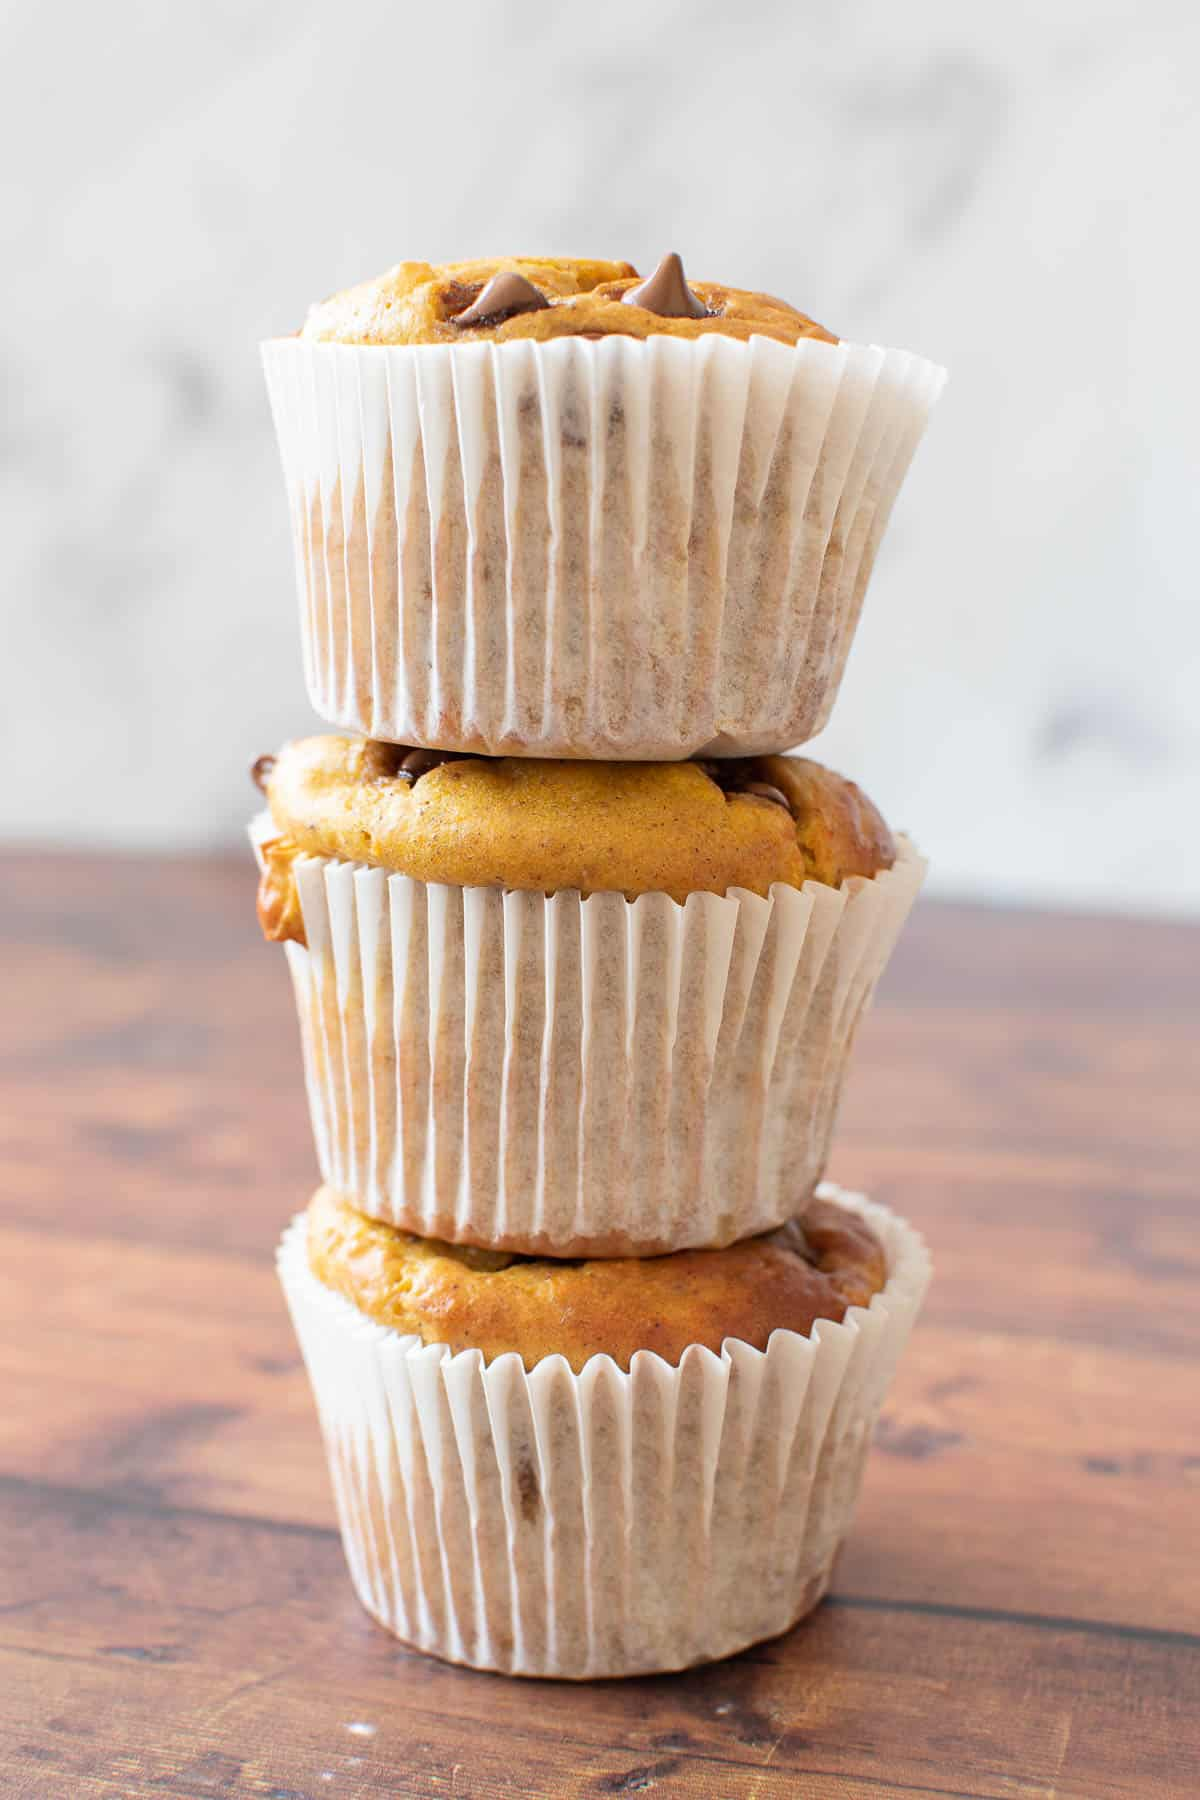 Three pumpkin chocolate chip muffins stacked on top of each other.